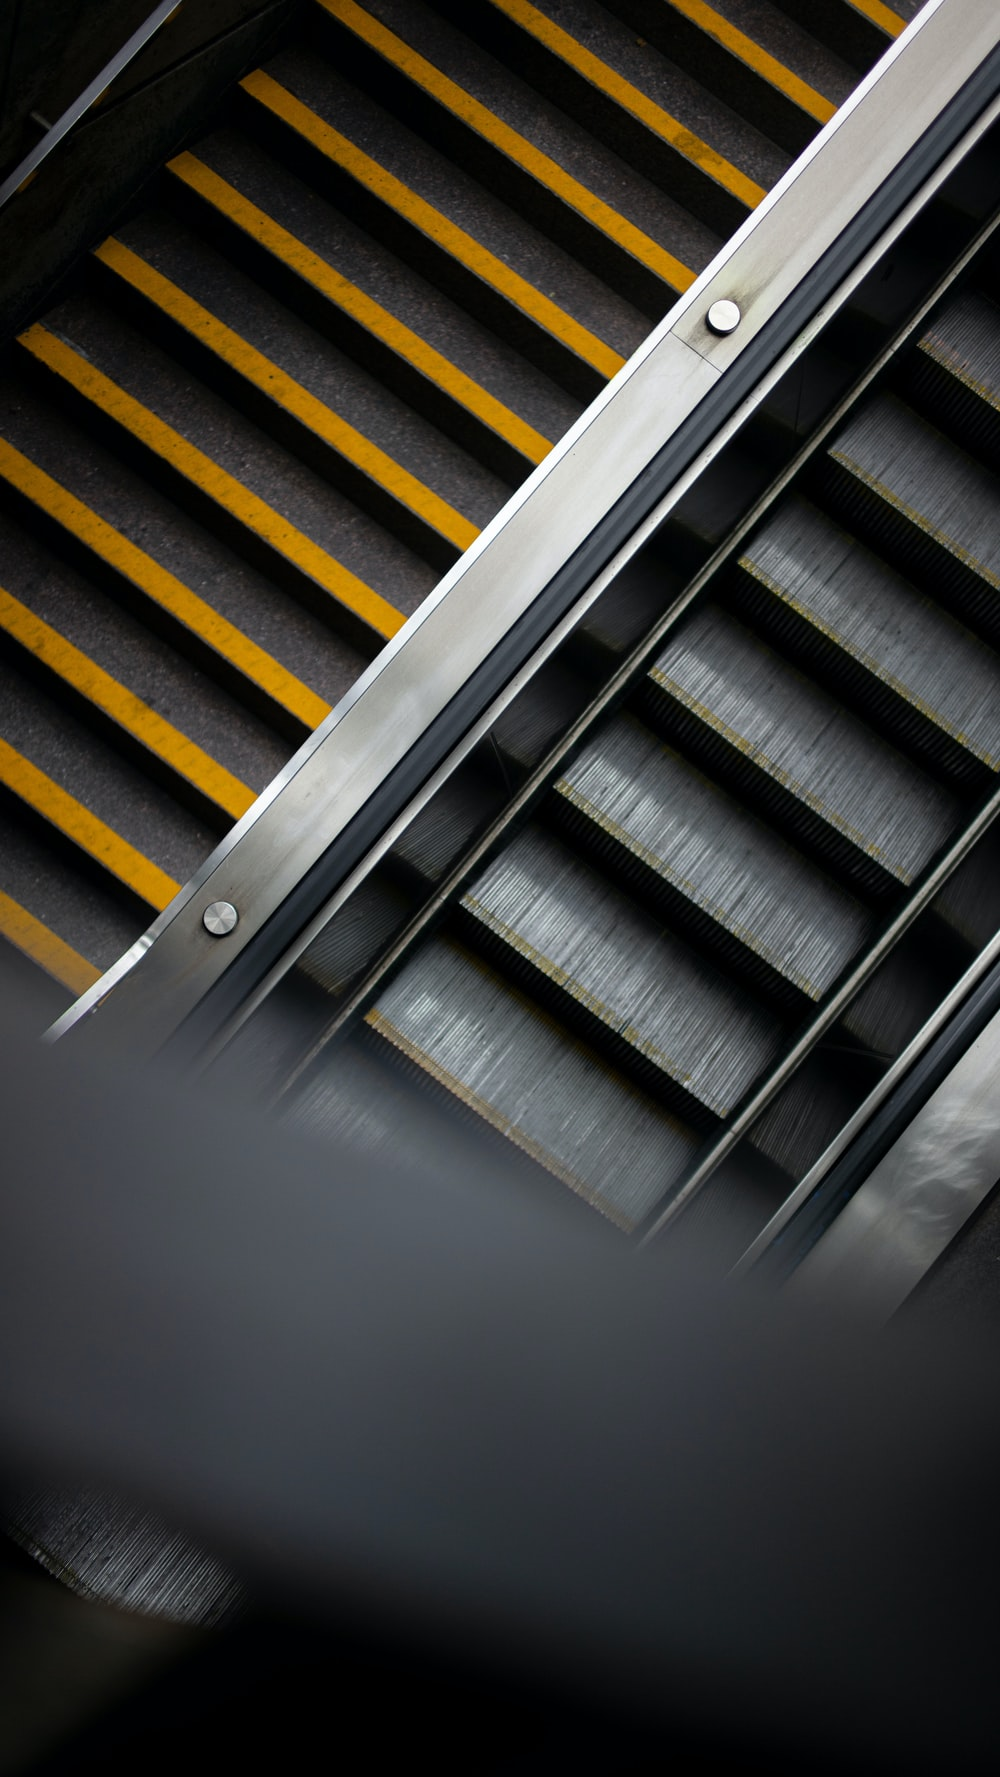 gray and yellow staircase in close up photography